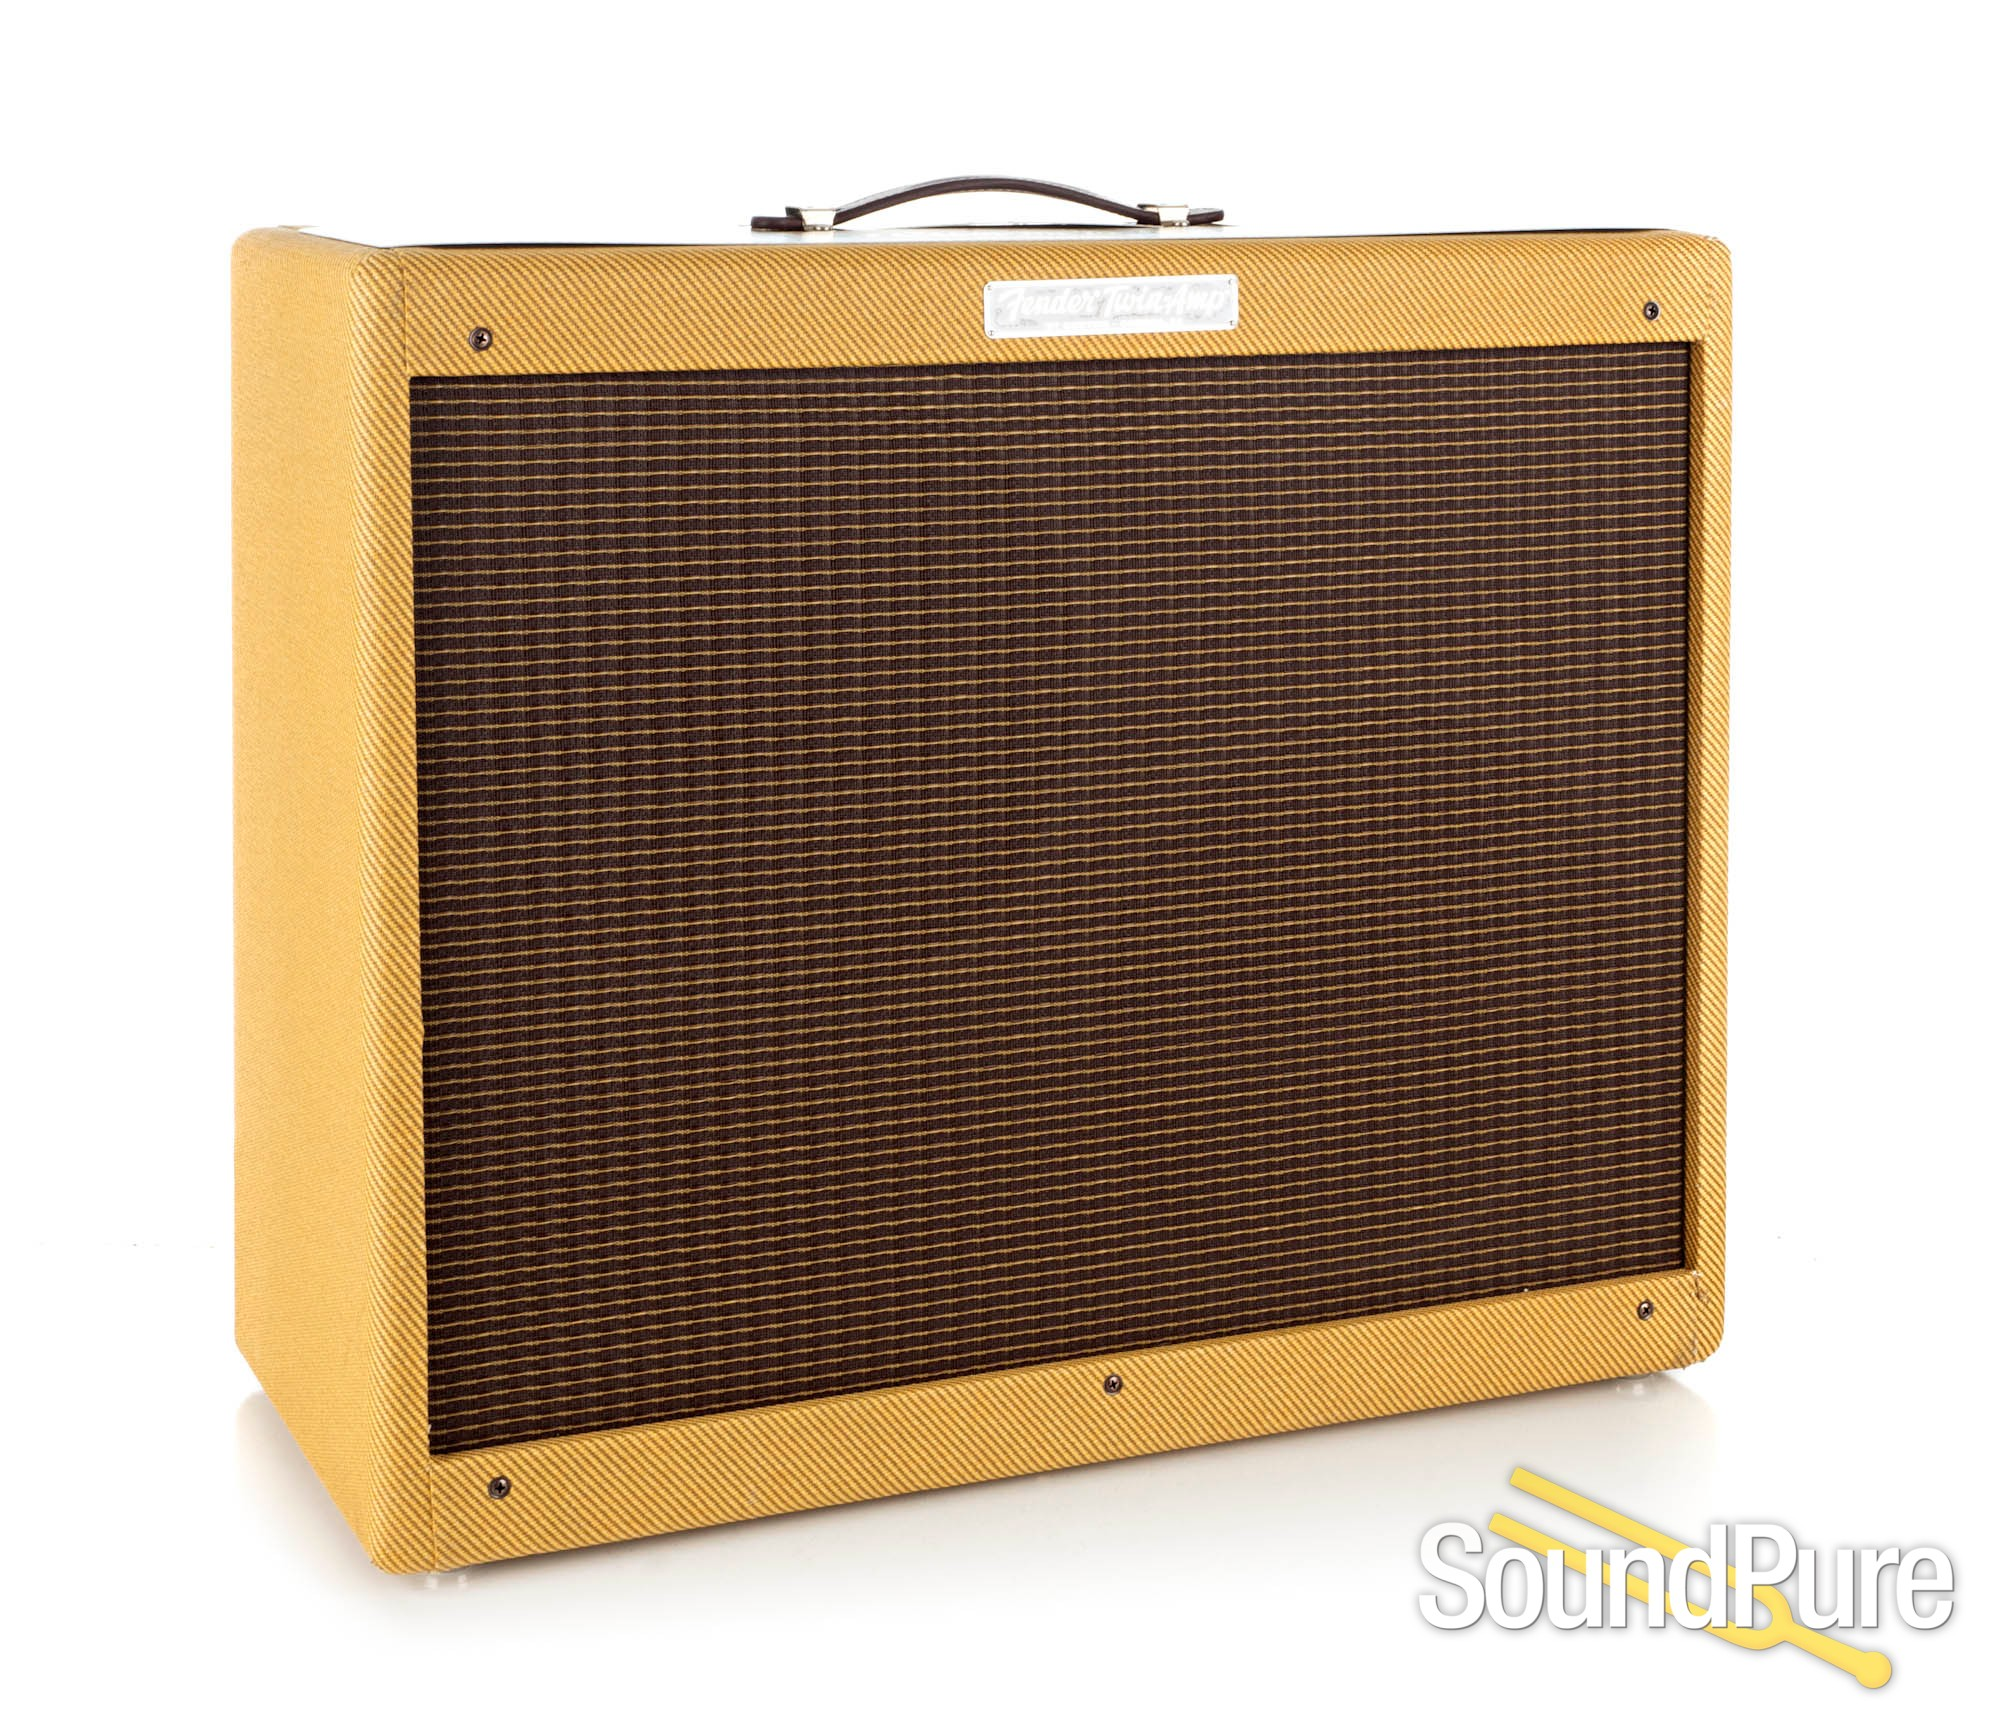 fender 39 57 custom twin 2x12 40w combo amp used. Black Bedroom Furniture Sets. Home Design Ideas